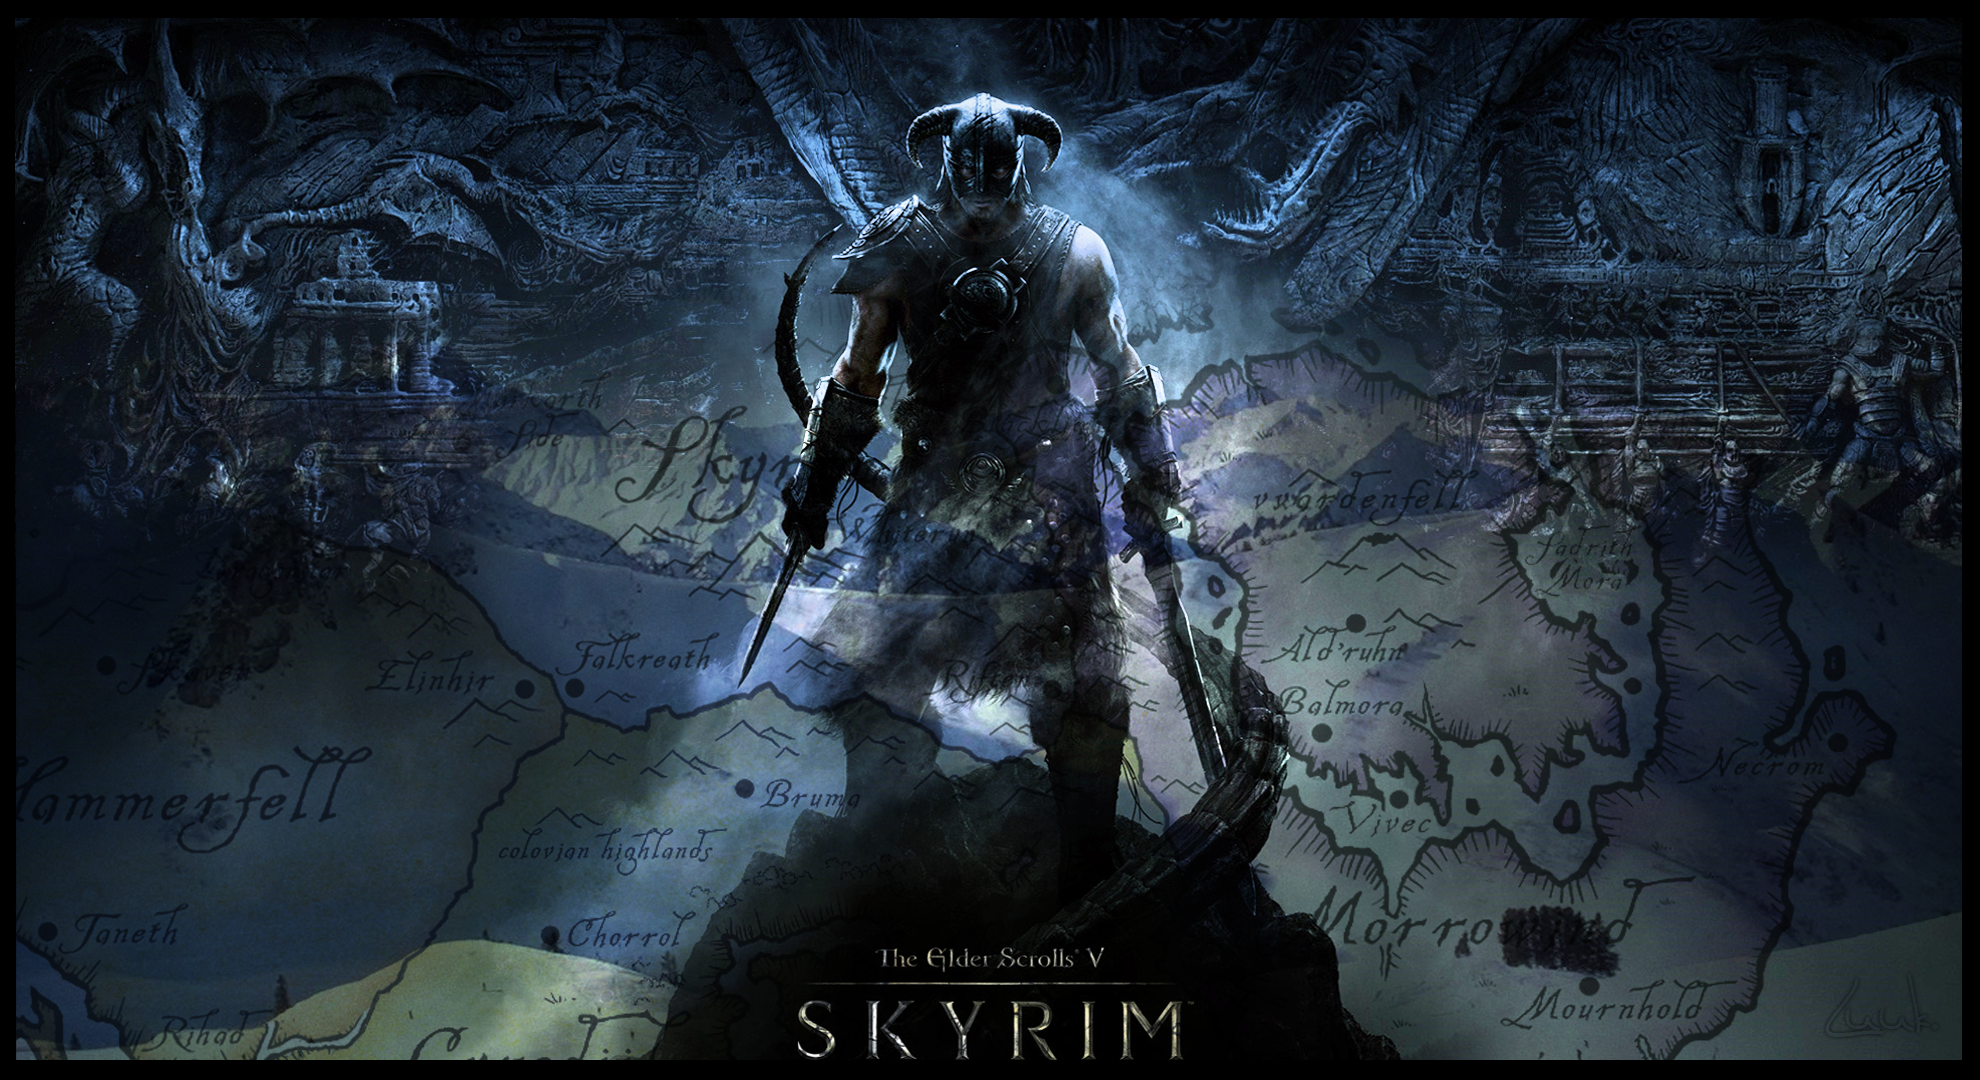 skyrim 1980 x 1040 wallpaper - photo #1